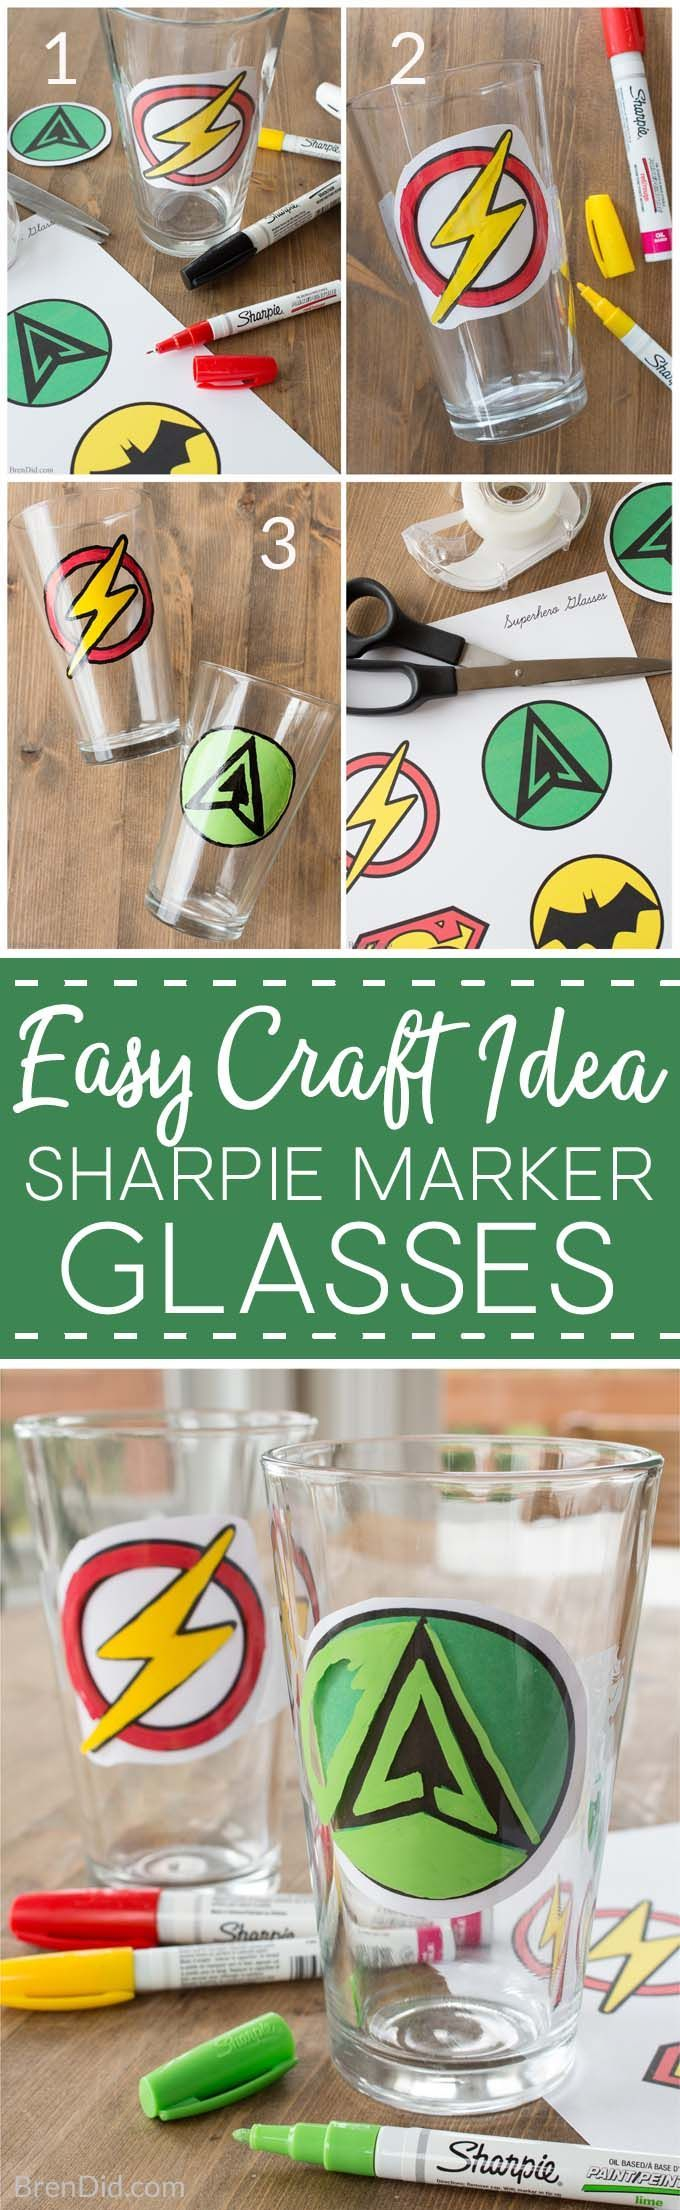 How to Make Custom DIY Sharpie Glasses, Sharpie glass diy, sharpie glassware, how to draw on glass with sharpie, sharpie art, sharpie crafts, superhero craft via @brendidblog